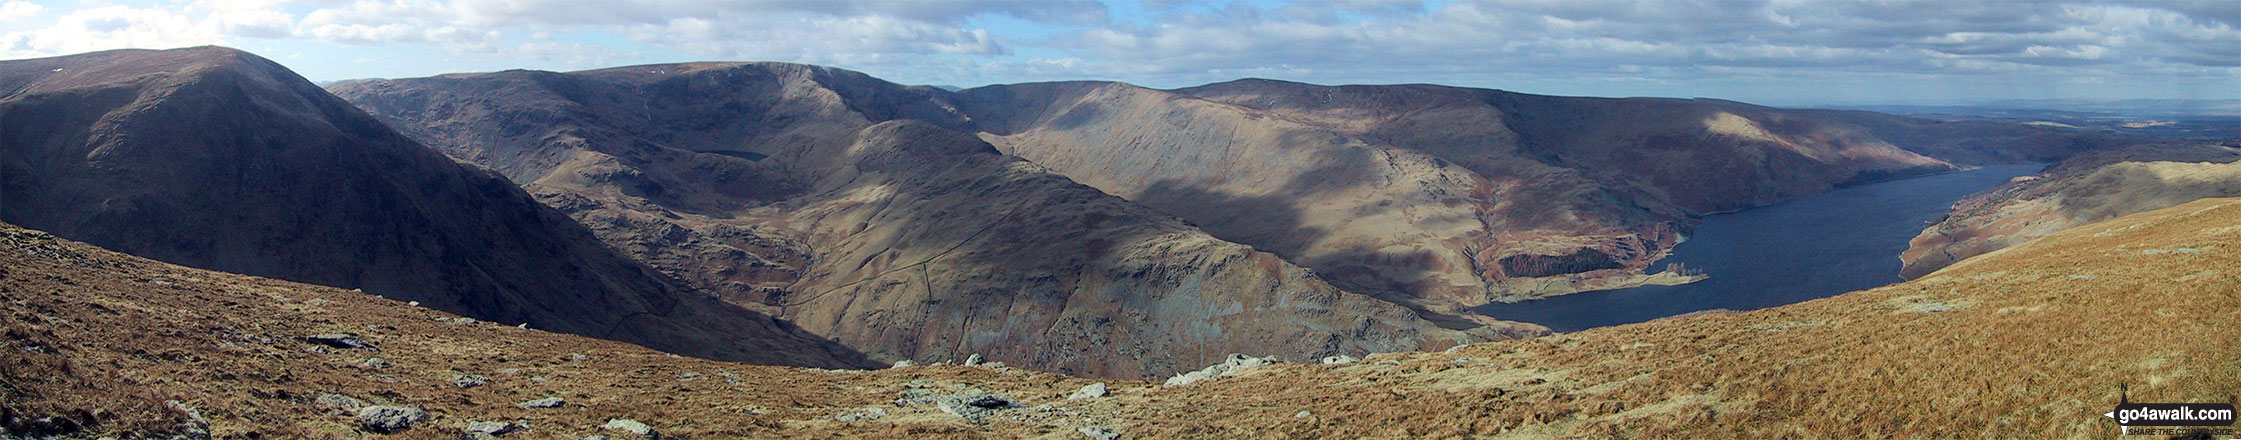 The view from the summit of Branstree (Artlecrag Pike) featuring Harter Fell (Mardale) (left), High Street, Rough Crag, High Raise (Mardale) and Whether How above Haweswater Reservoir